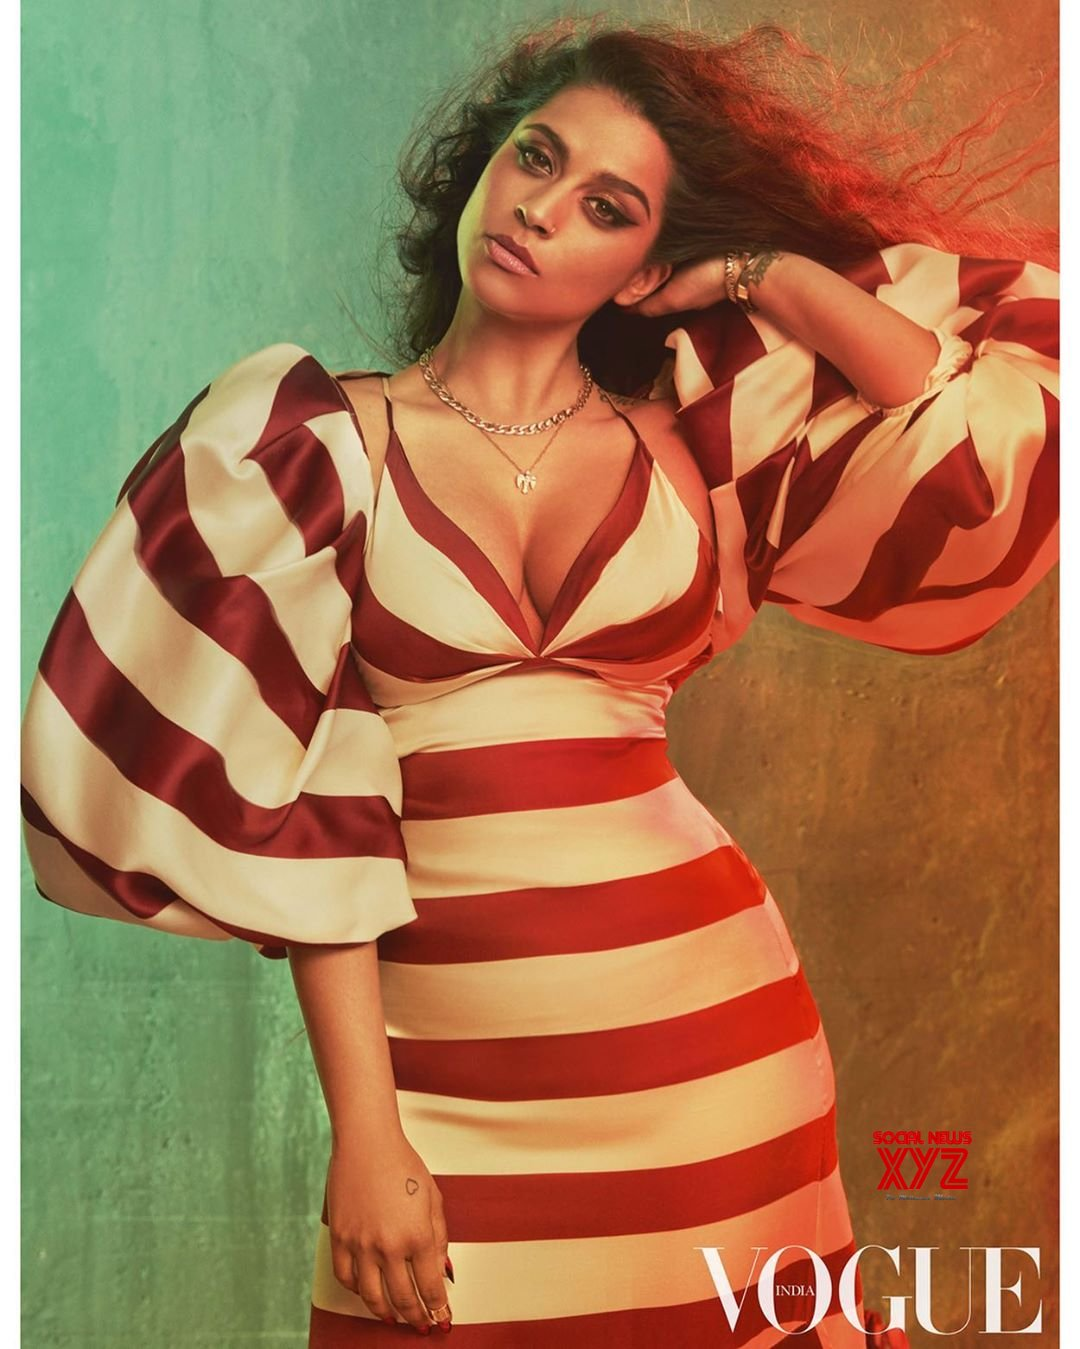 Actress Lilly Singh Hot Stills From Vogue India November Cover Shoot